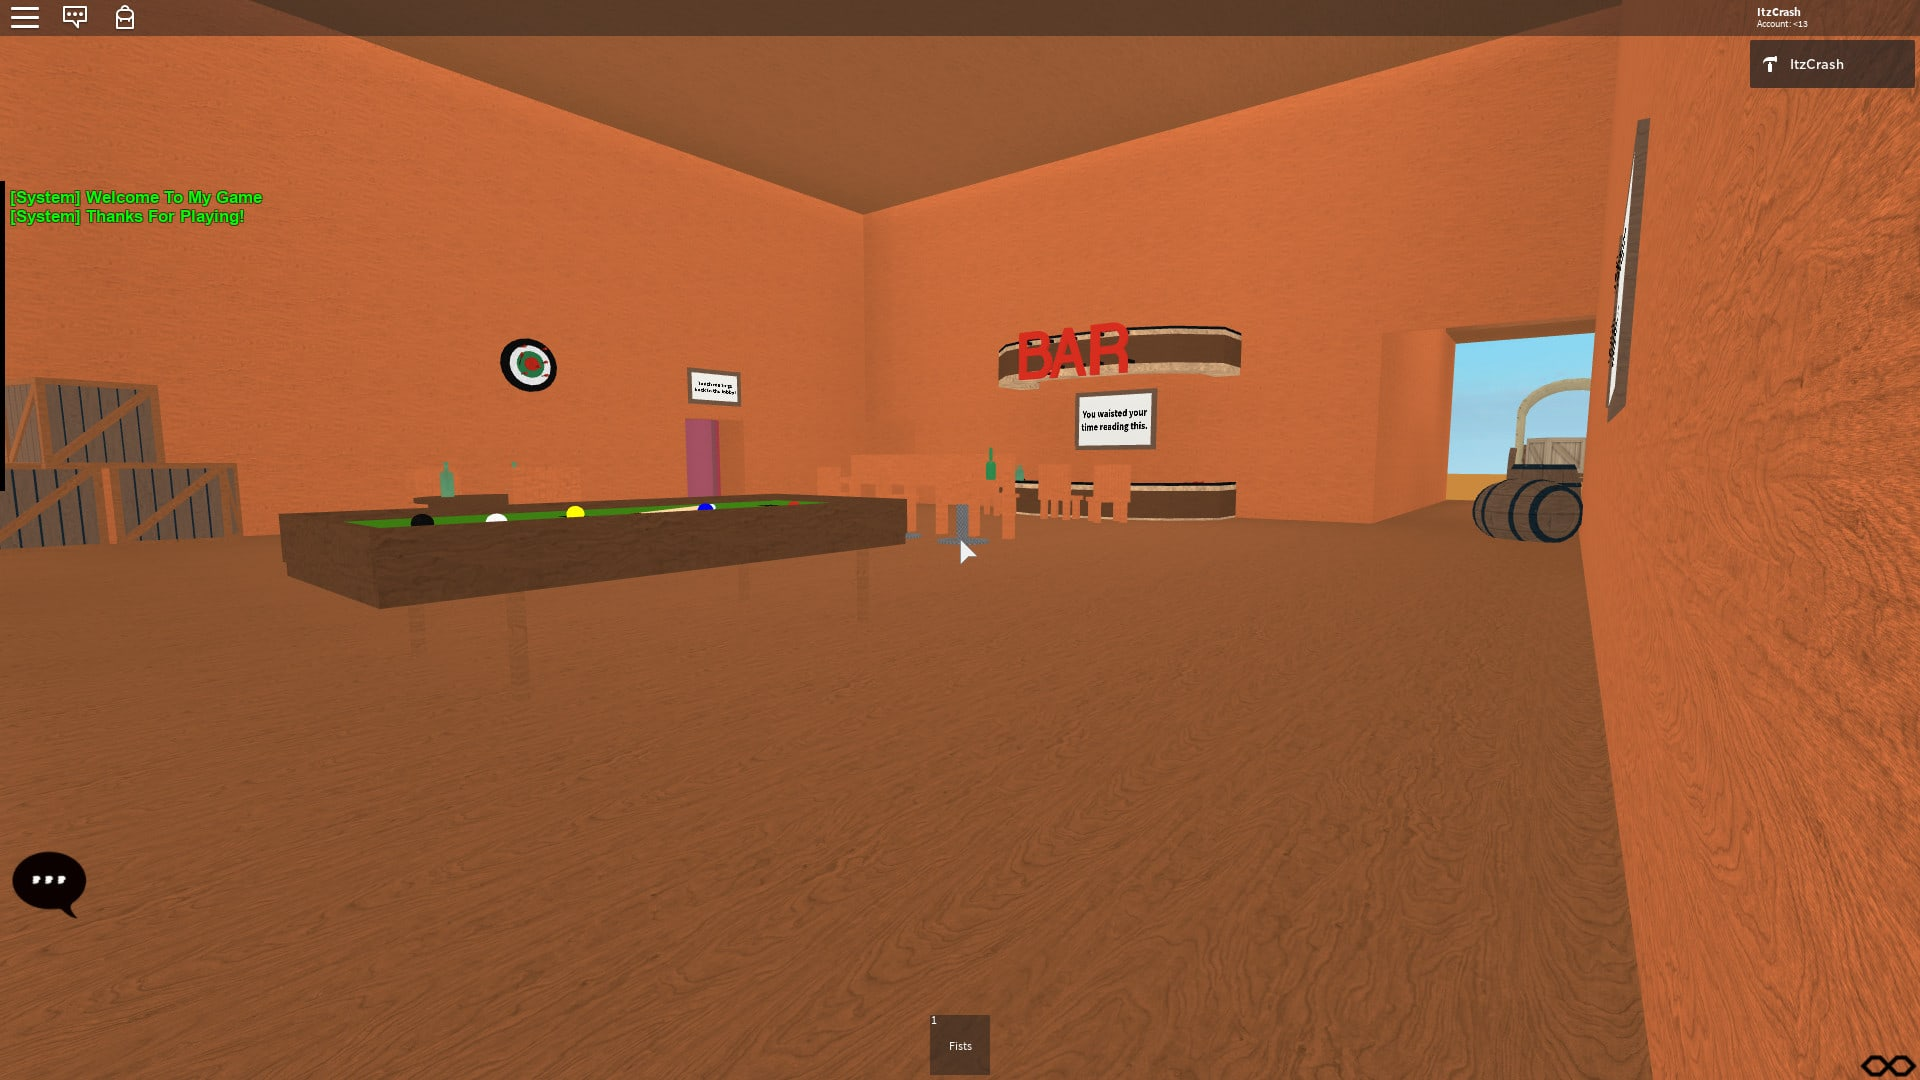 Fighting Game In Roblox Give You A Base Fist Fighting Roblox Game With Lobby And 2 Maps By Ellis 2